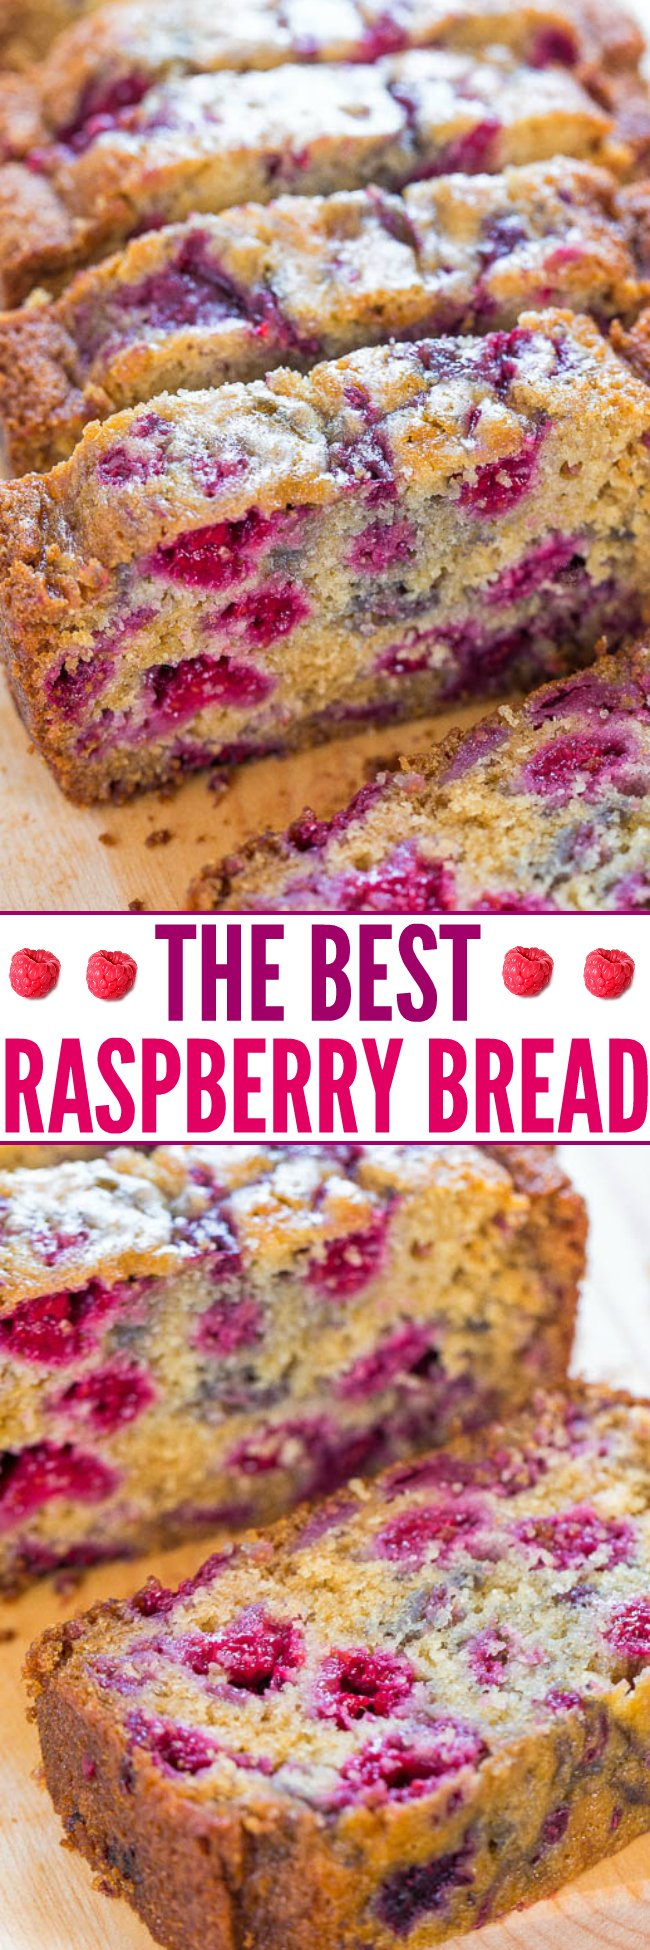 The Best Raspberry Bread - There's almost more raspberries than bread in my recipe for the BEST RASPBERRY BREAD!! You'll want to make it over and over because it's super soft and just bursting with juicy berries!!